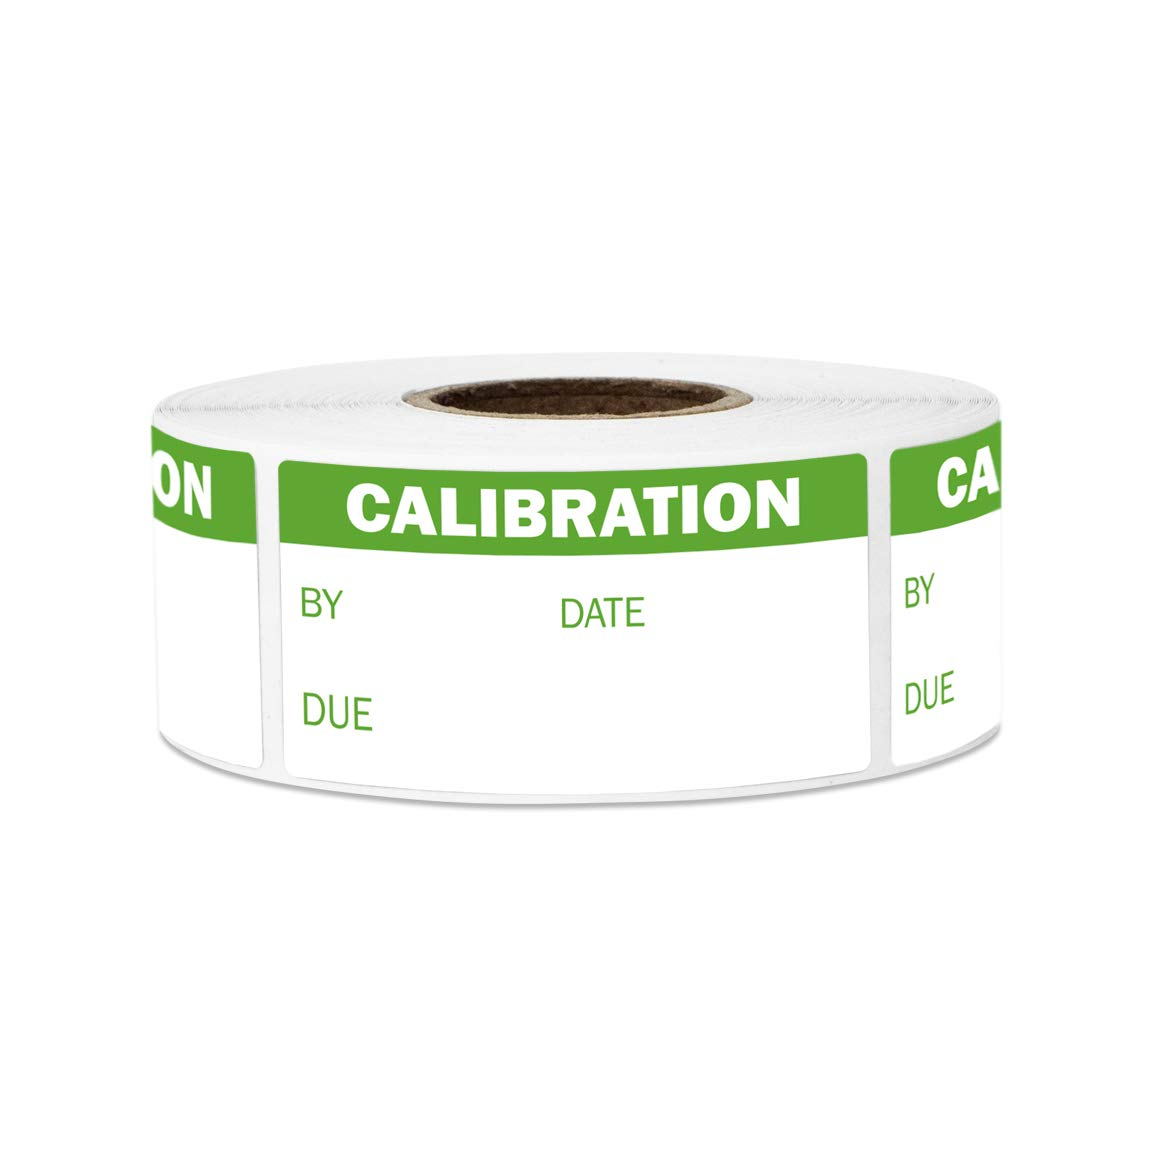 600 Labels - Calibration Stickers for NIST Calibration, ISO-900 Calibration, Quality Control (2 x 1 Inch, Green - 2 Rolls)